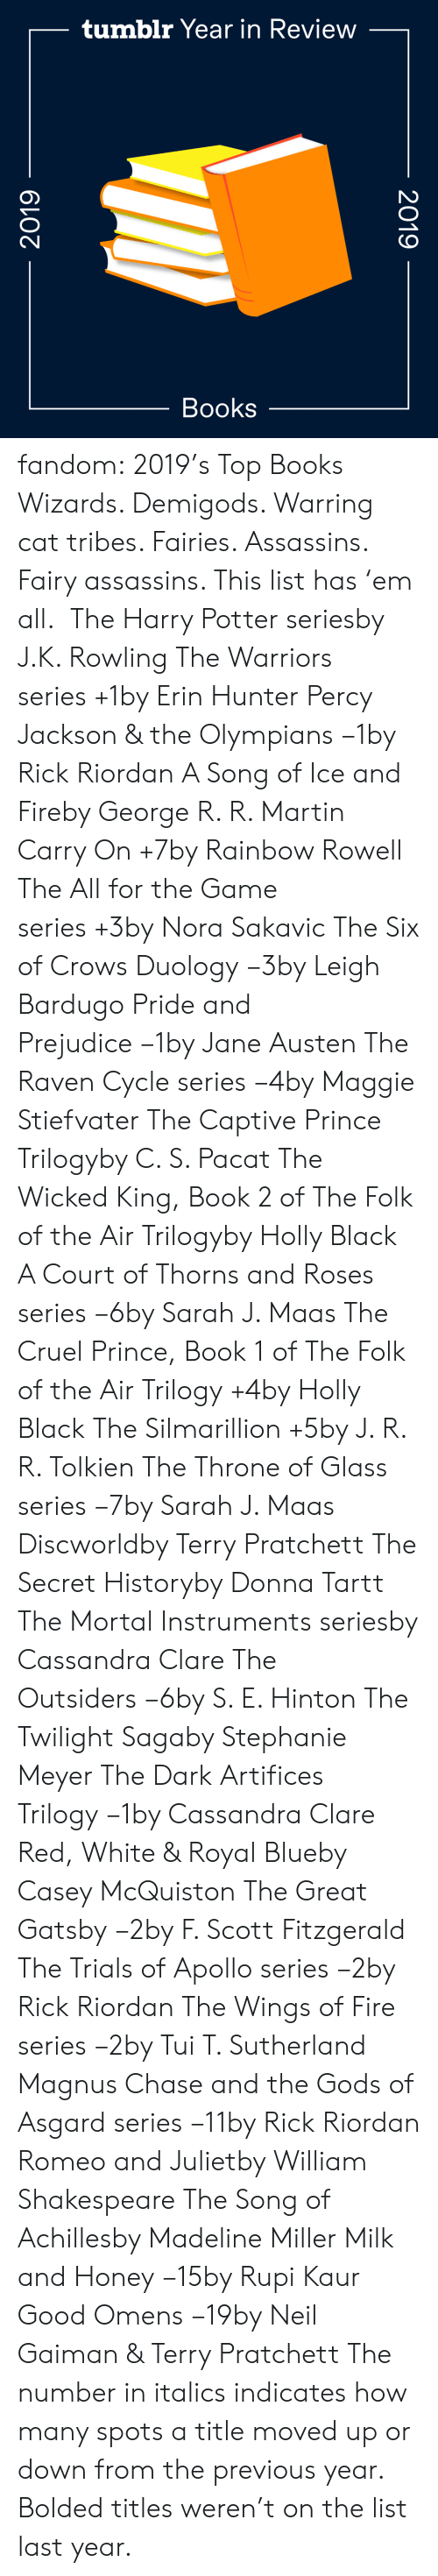 Wicked: tumblr Year in Review  Books  2019  2019 fandom:  2019's Top Books  Wizards. Demigods. Warring cat tribes. Fairies. Assassins. Fairy assassins. This list has 'em all.   The Harry Potter seriesby J.K. Rowling  The Warriors series +1by Erin Hunter  Percy Jackson & the Olympians −1by Rick Riordan  A Song of Ice and Fireby George R. R. Martin  Carry On +7by Rainbow Rowell  The All for the Game series +3by Nora Sakavic  The Six of Crows Duology −3by Leigh Bardugo  Pride and Prejudice −1by Jane Austen  The Raven Cycle series −4by Maggie Stiefvater  The Captive Prince Trilogyby C. S. Pacat  The Wicked King, Book 2 of The Folk of the Air Trilogyby Holly Black  A Court of Thorns and Roses series −6by Sarah J. Maas  The Cruel Prince, Book 1 of The Folk of the Air Trilogy +4by Holly Black  The Silmarillion +5by J. R. R. Tolkien  The Throne of Glass series −7by Sarah J. Maas  Discworldby Terry Pratchett  The Secret Historyby Donna Tartt  The Mortal Instruments seriesby Cassandra Clare  The Outsiders −6by S. E. Hinton  The Twilight Sagaby Stephanie Meyer  The Dark Artifices Trilogy −1by Cassandra Clare  Red, White & Royal Blueby Casey McQuiston  The Great Gatsby −2by F. Scott Fitzgerald  The Trials of Apollo series −2by Rick Riordan  The Wings of Fire series −2by Tui T. Sutherland  Magnus Chase and the Gods of Asgard series −11by Rick Riordan  Romeo and Julietby William Shakespeare  The Song of Achillesby Madeline Miller  Milk and Honey −15by Rupi Kaur  Good Omens −19by Neil Gaiman & Terry Pratchett The number in italics indicates how many spots a title moved up or down from the previous year. Bolded titles weren't on the list last year.